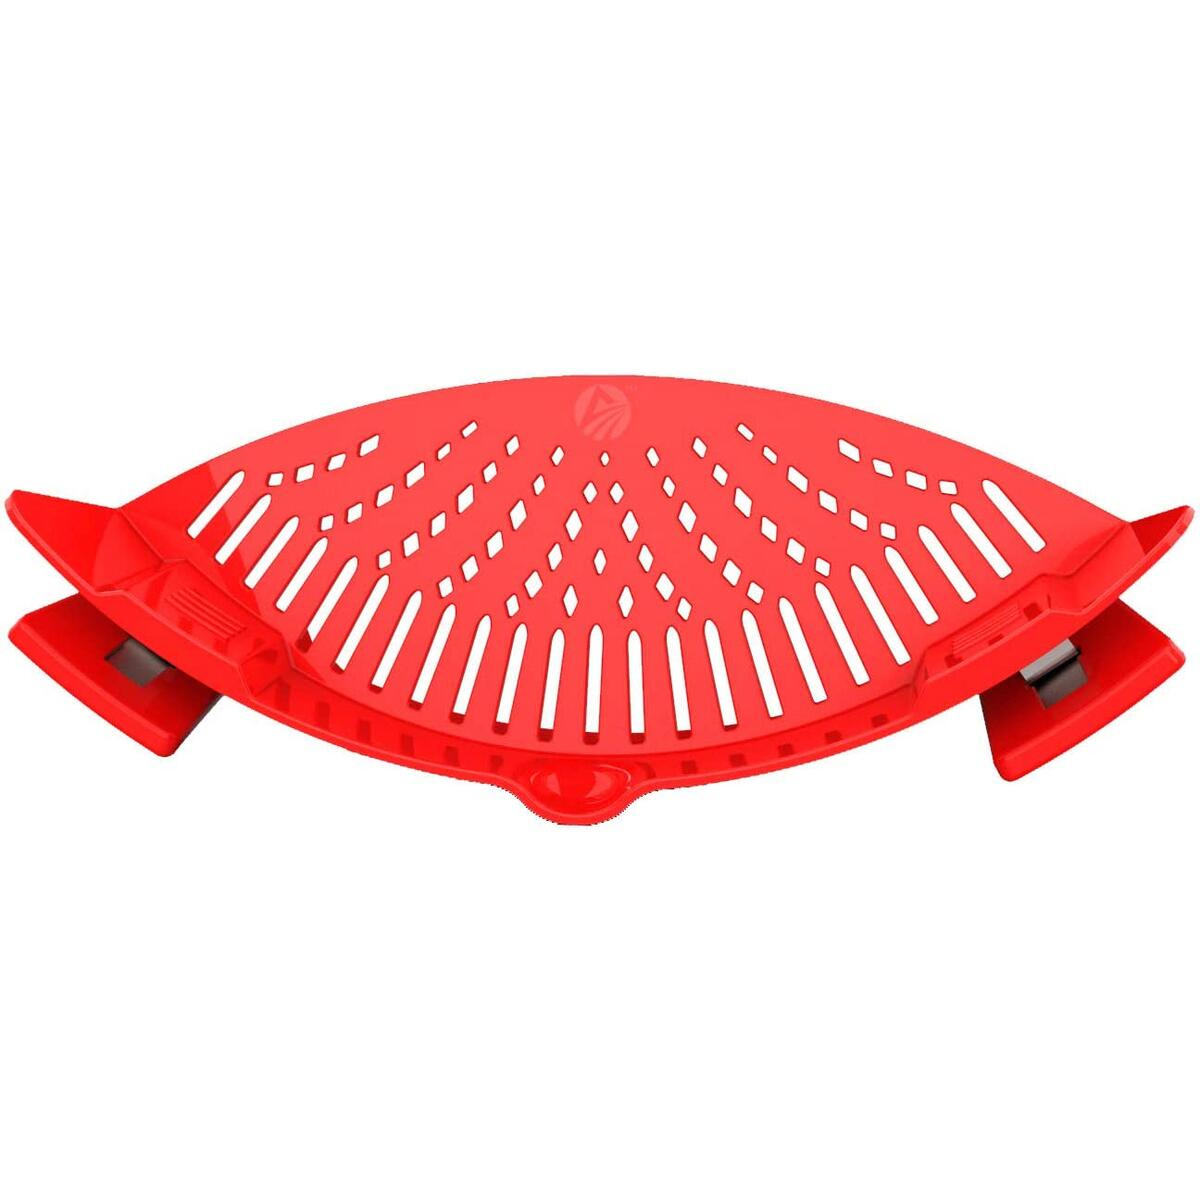 Clip On Strainer Silicone - Universal Fit for all Pots and Bowls | Snap On Strainer for Pasta, Meat, Vegetables, Fruit | Silicone Colander for Kitchen | Easily Drain Food | Space Saving by Arlig